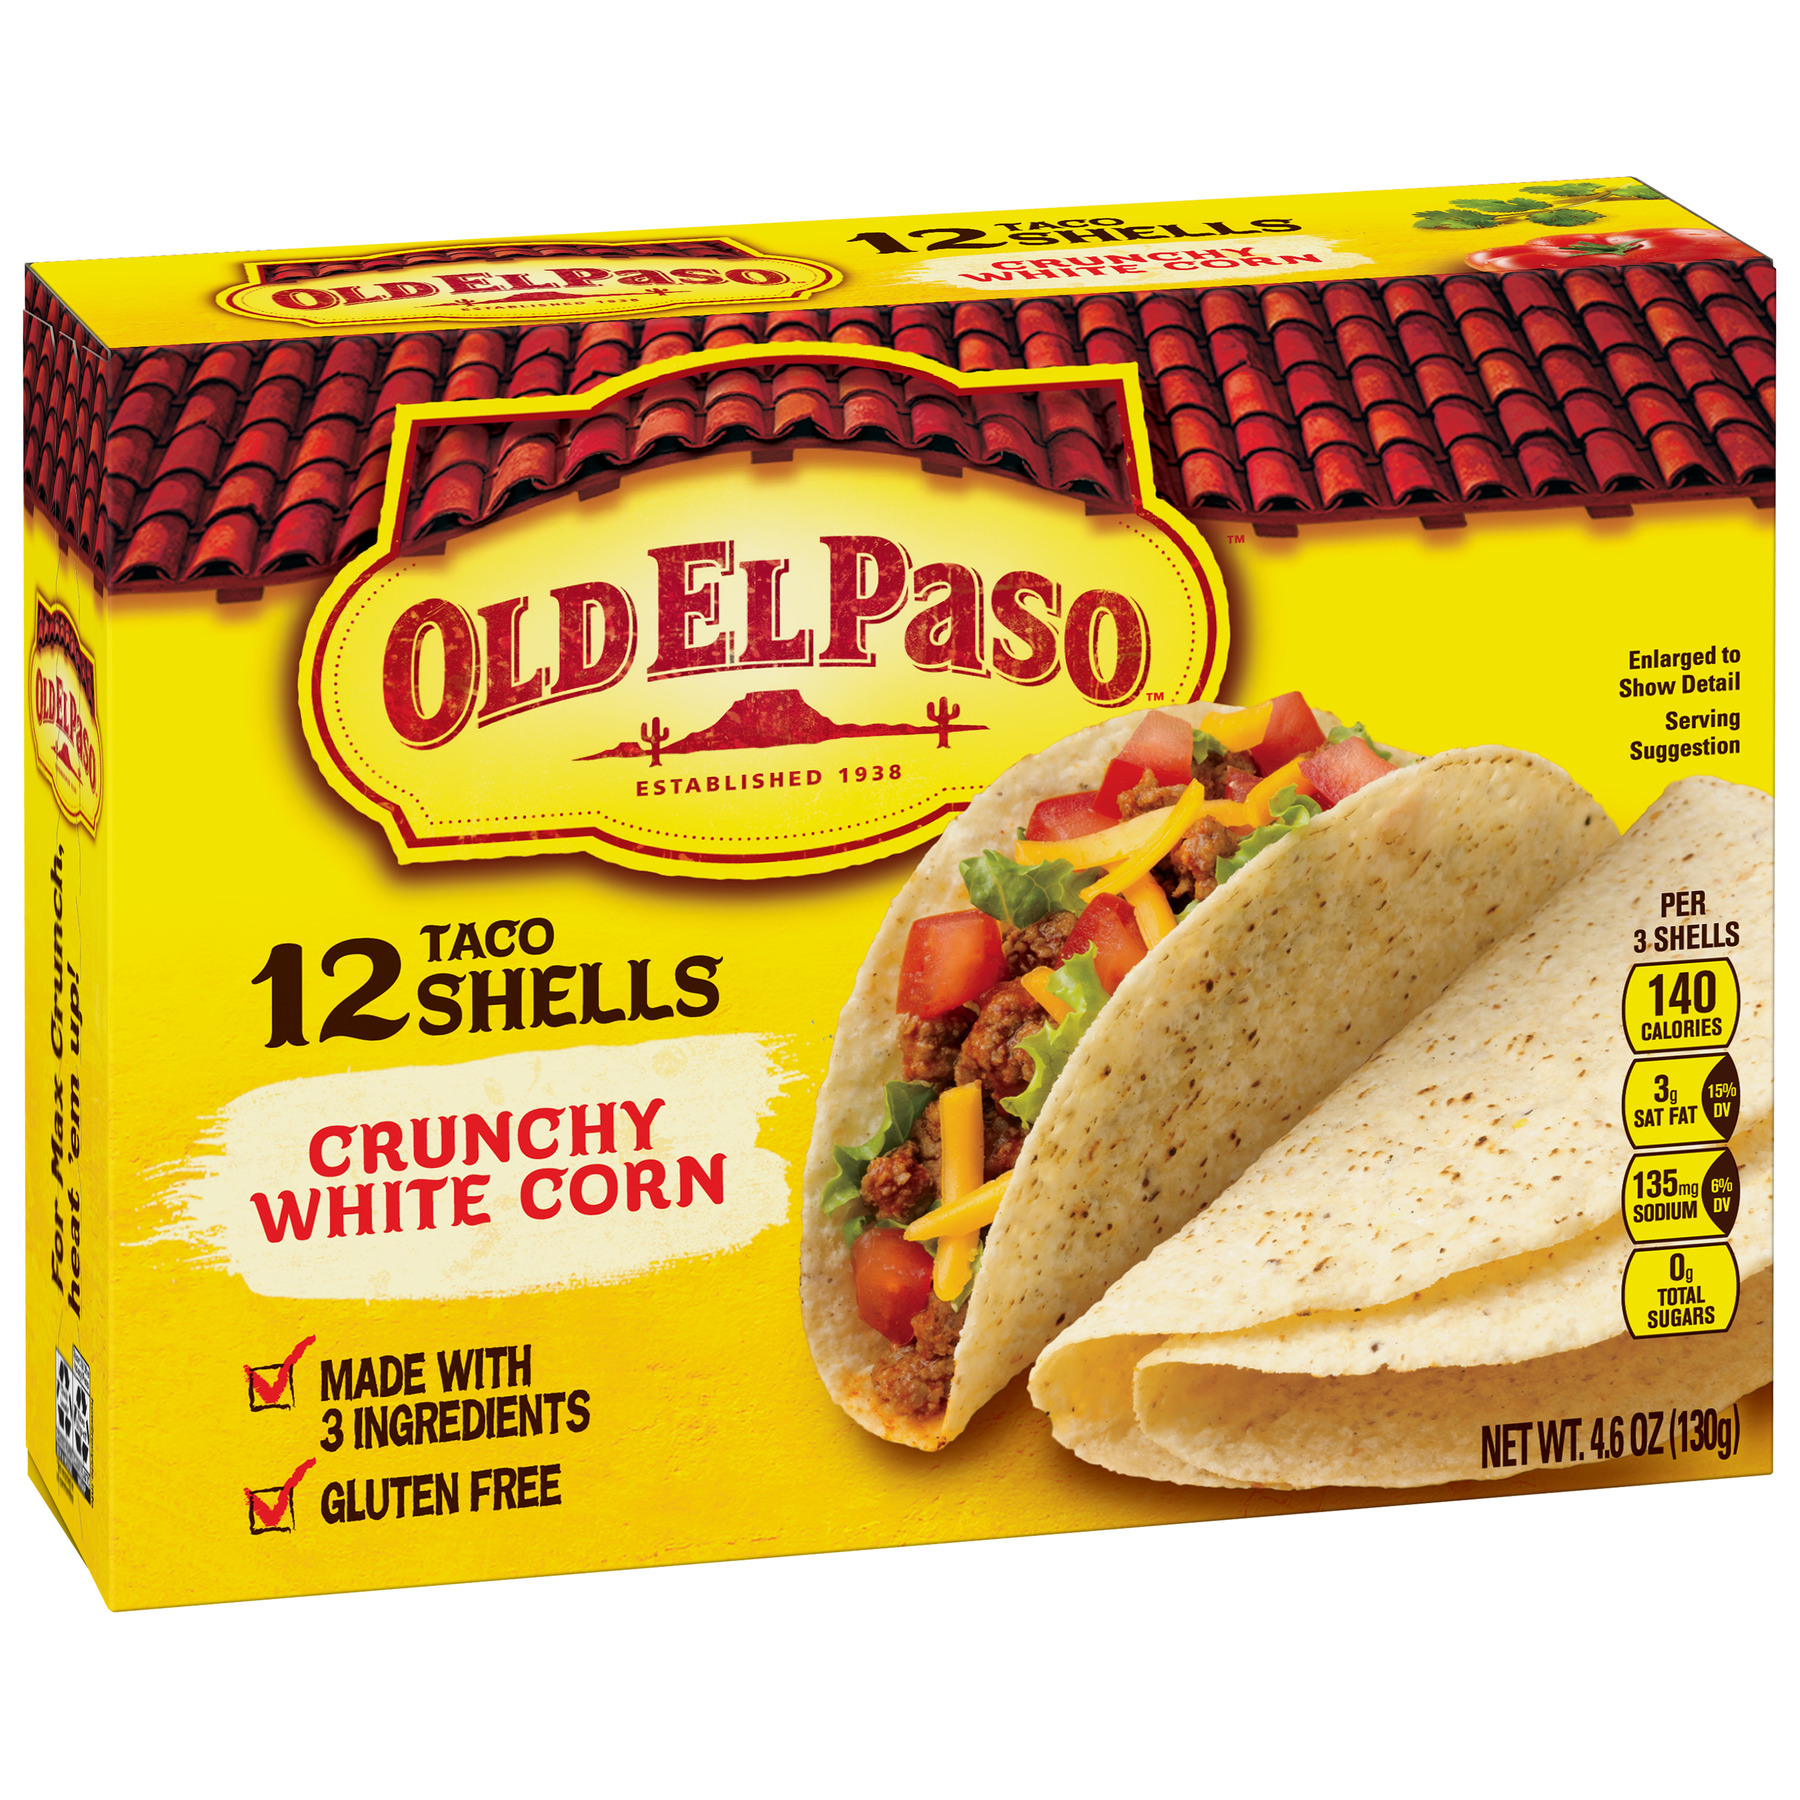 Old El Paso Crunchy White Corn Shells, 12 Ct, 4.6 oz